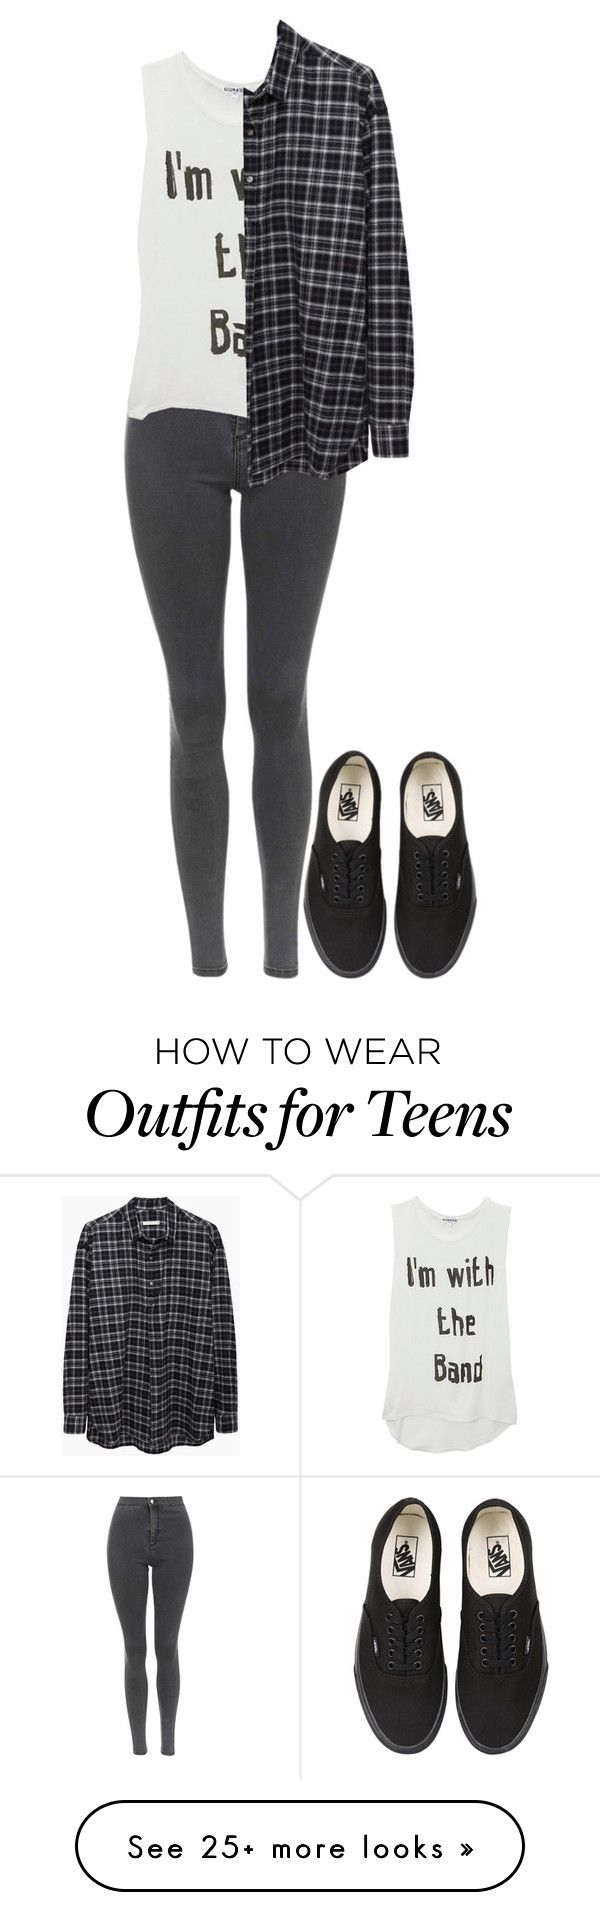 """Untitled #448"" by fluffyhemmings on Polyvore featuring Topshop, 6397 and Vans"